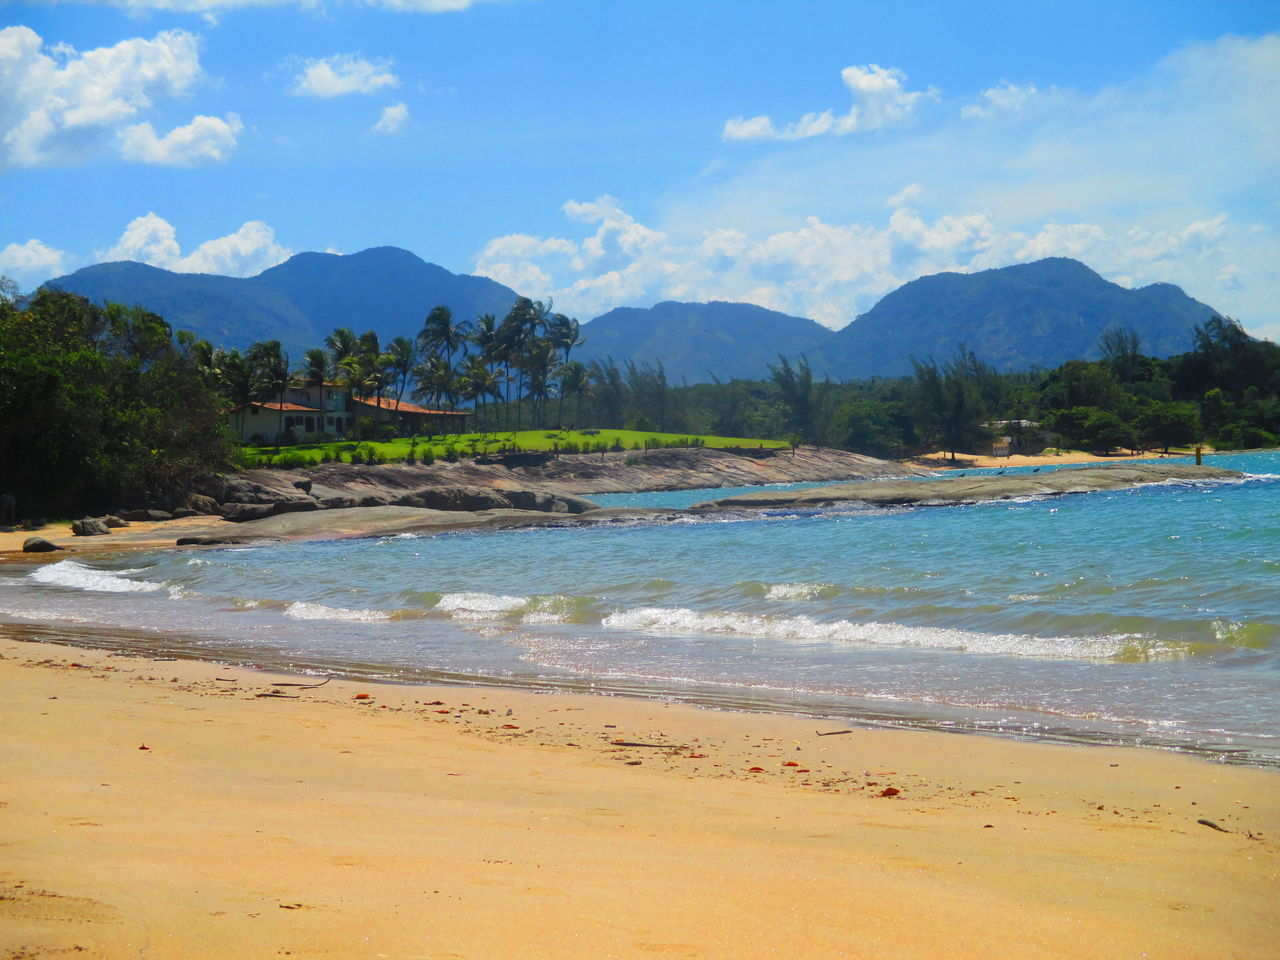 beach, mountain, sky, scenics, beauty in nature, sand, sea, water, nature, shore, tranquil scene, tranquility, cloud - sky, no people, mountain range, outdoors, day, wave, blue, tree, landscape